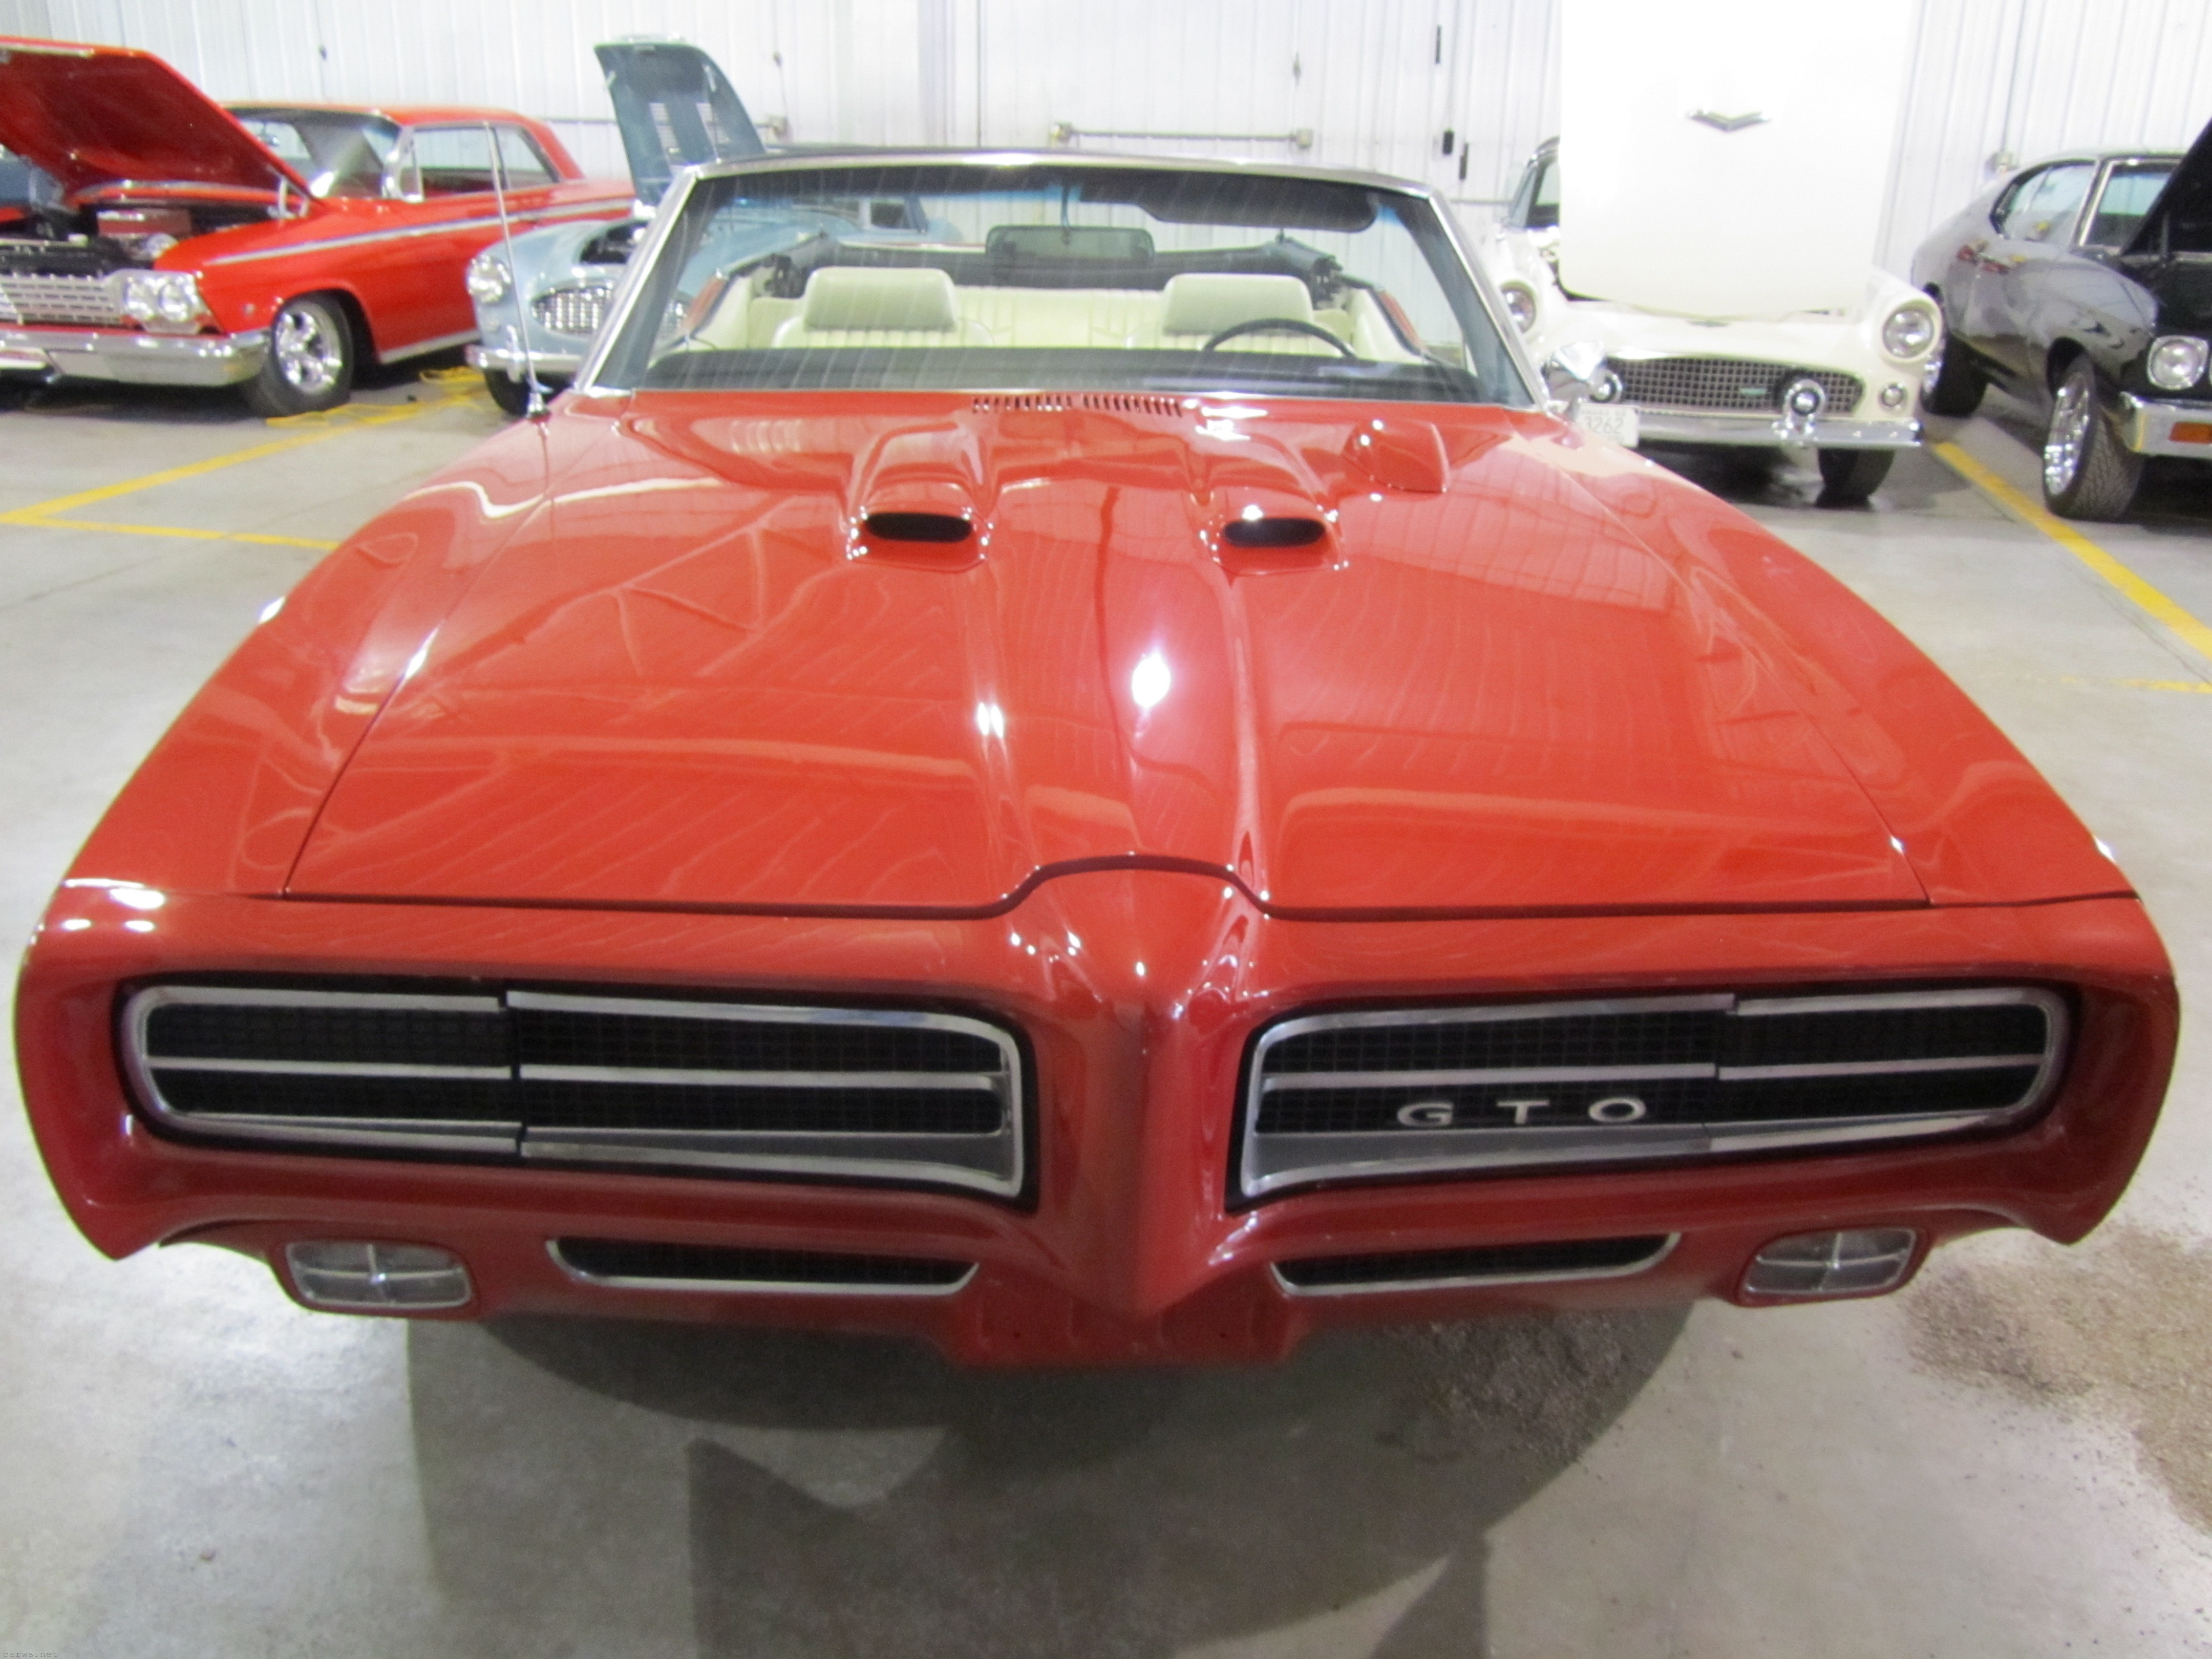 Pontiac Gto Wallpapers Pictures Images 1960 Wallpaper